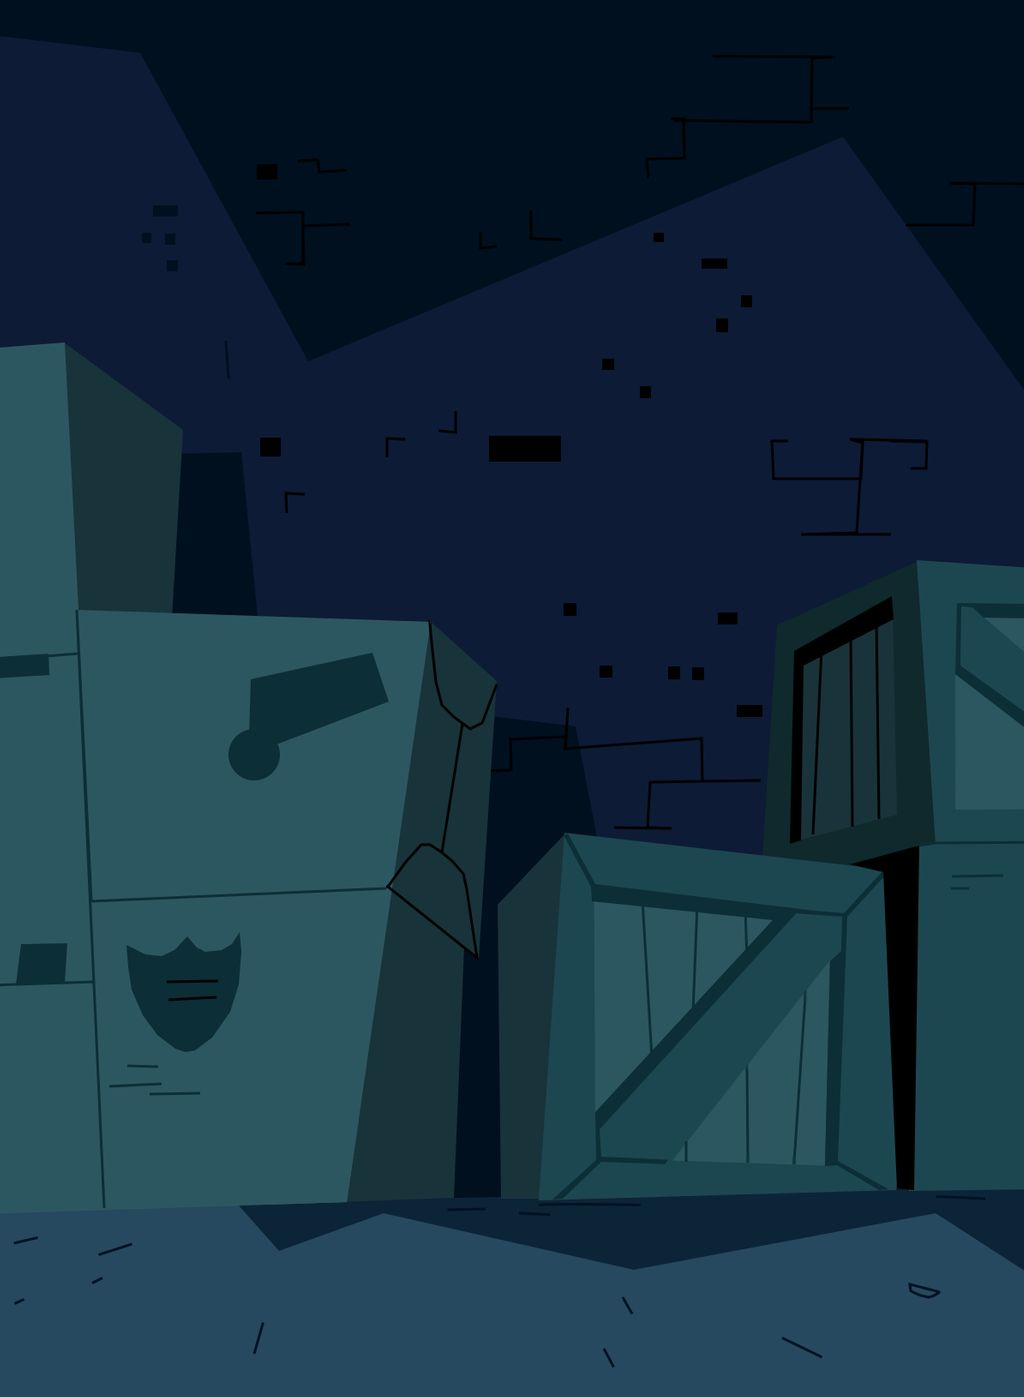 Danny Phantom Background Warehouse 1 by christophr1 1024x1397